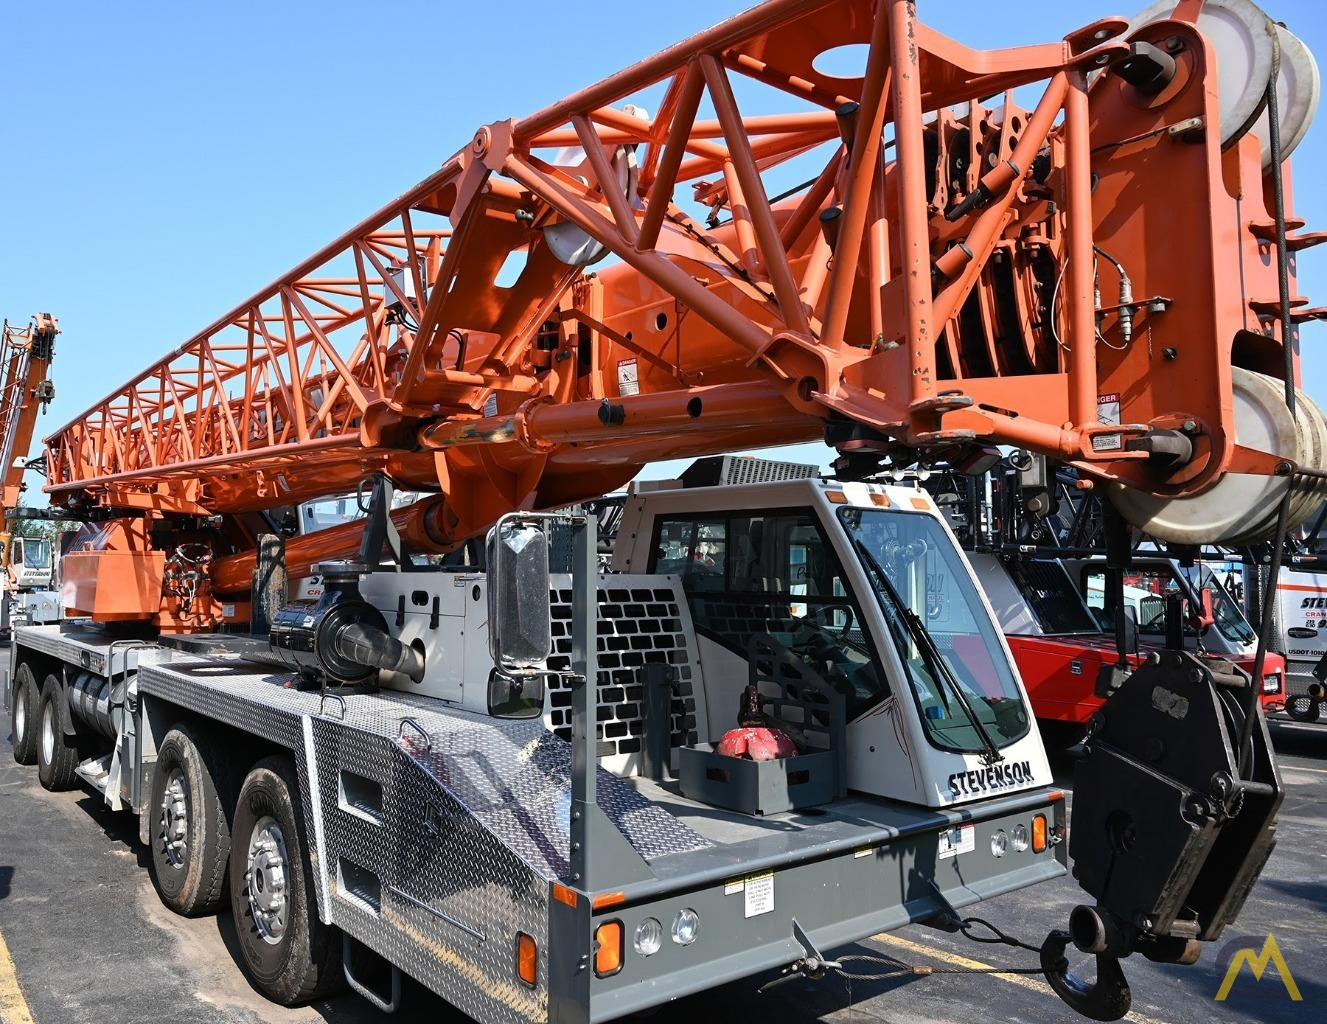 2012 Grove TMS9000E 110-Ton Hydraulic Truck Crane  Motivated Seller, All Reasonable Offers Considered 1